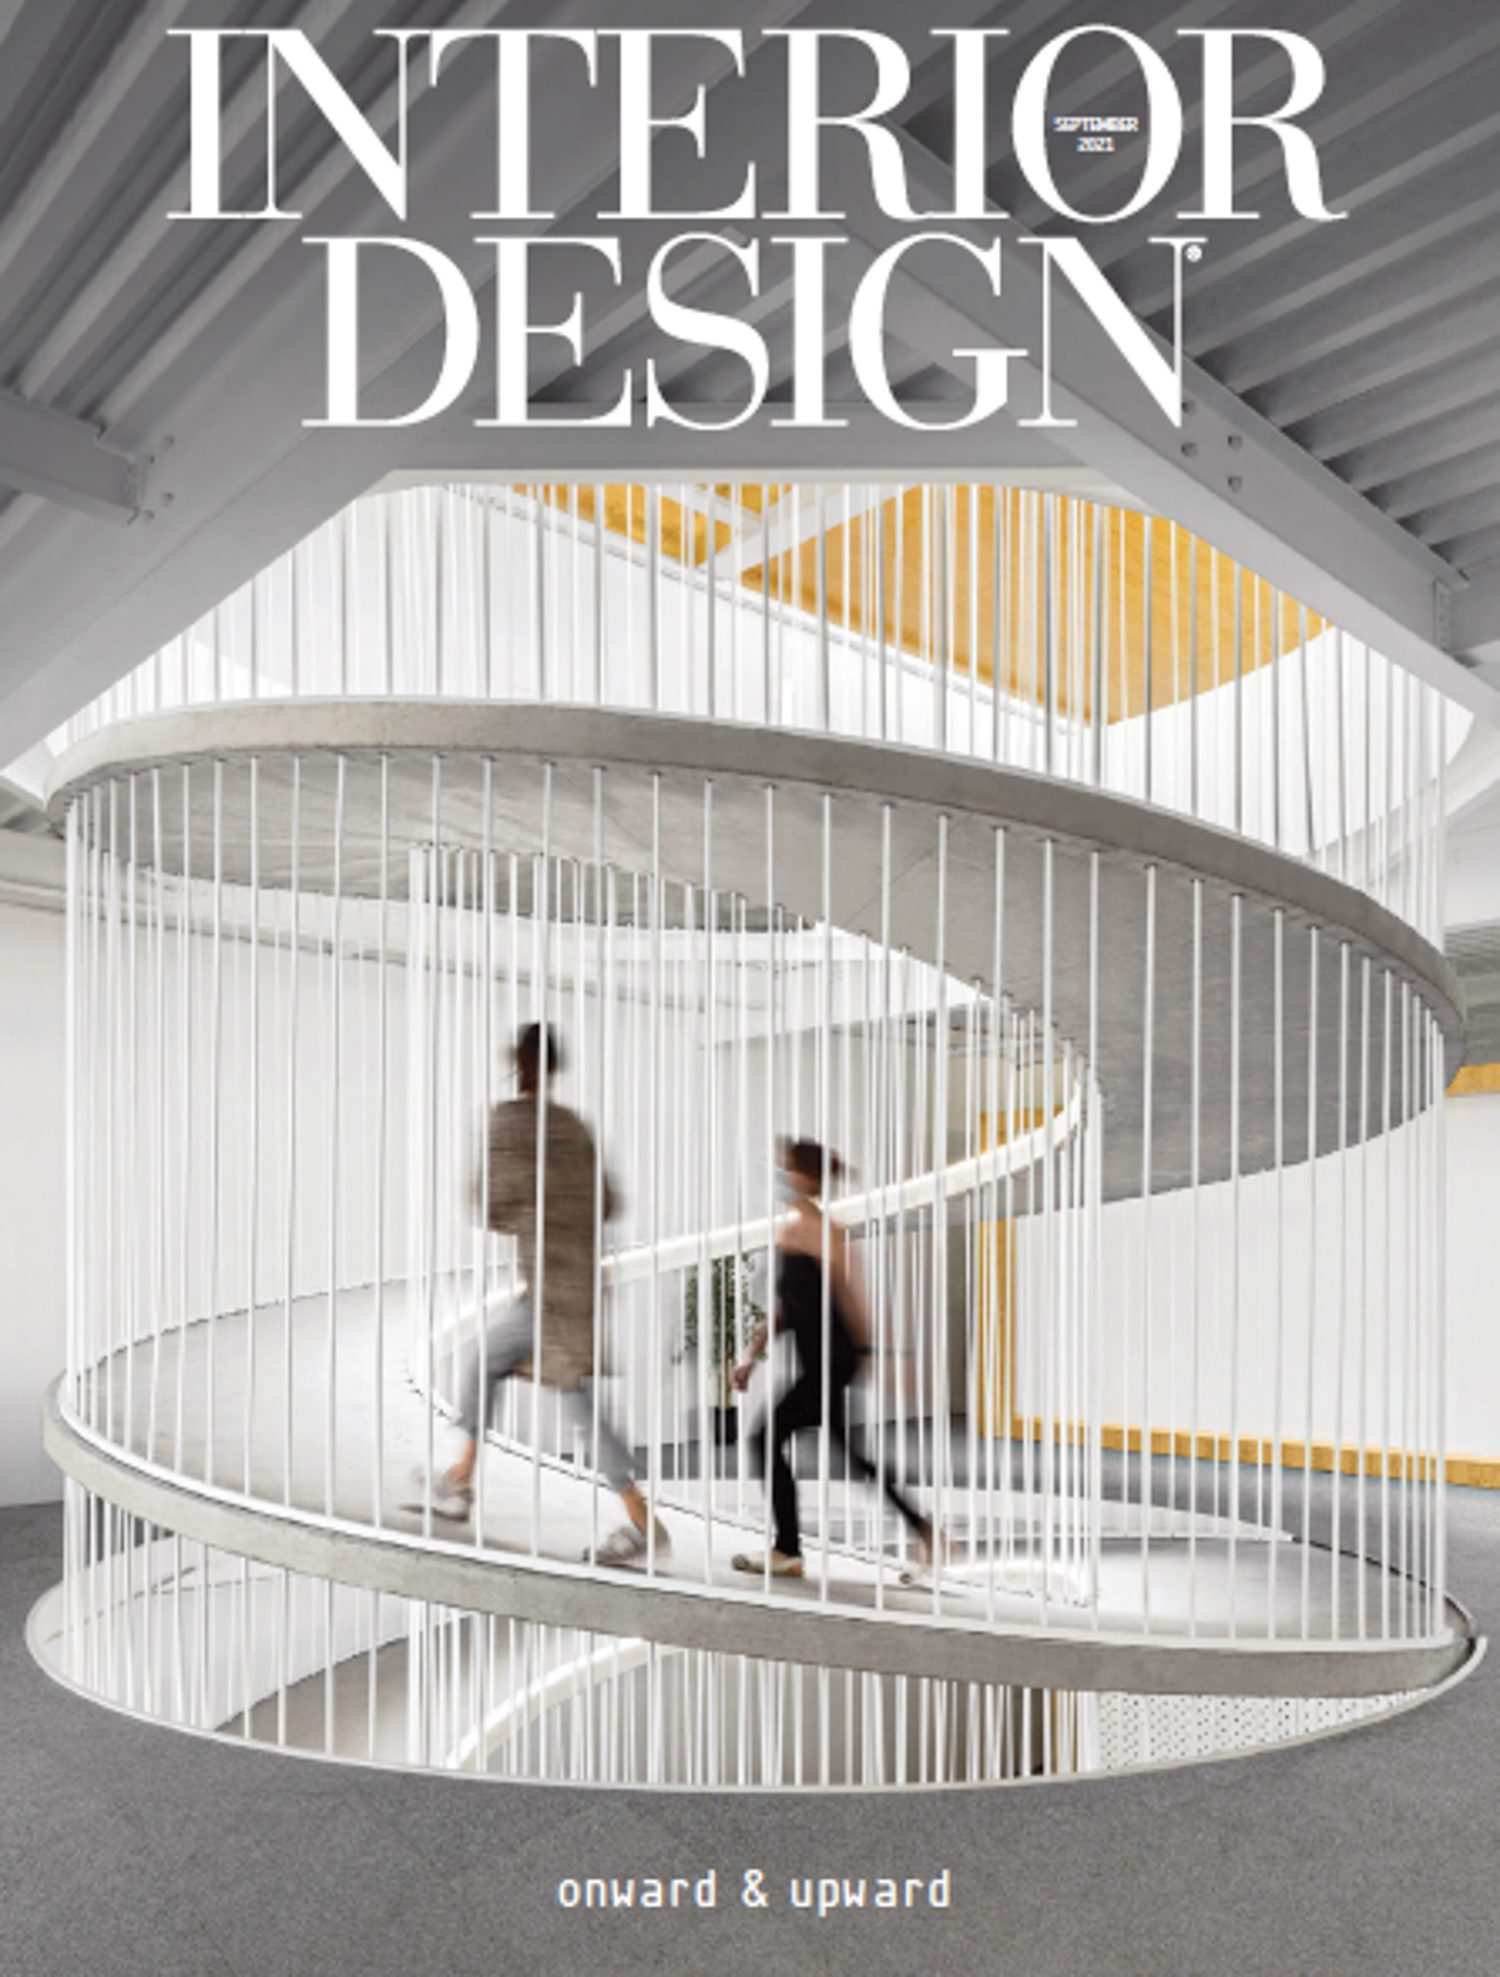 Interior Design September 2021 cover with a spiral gray ramp.